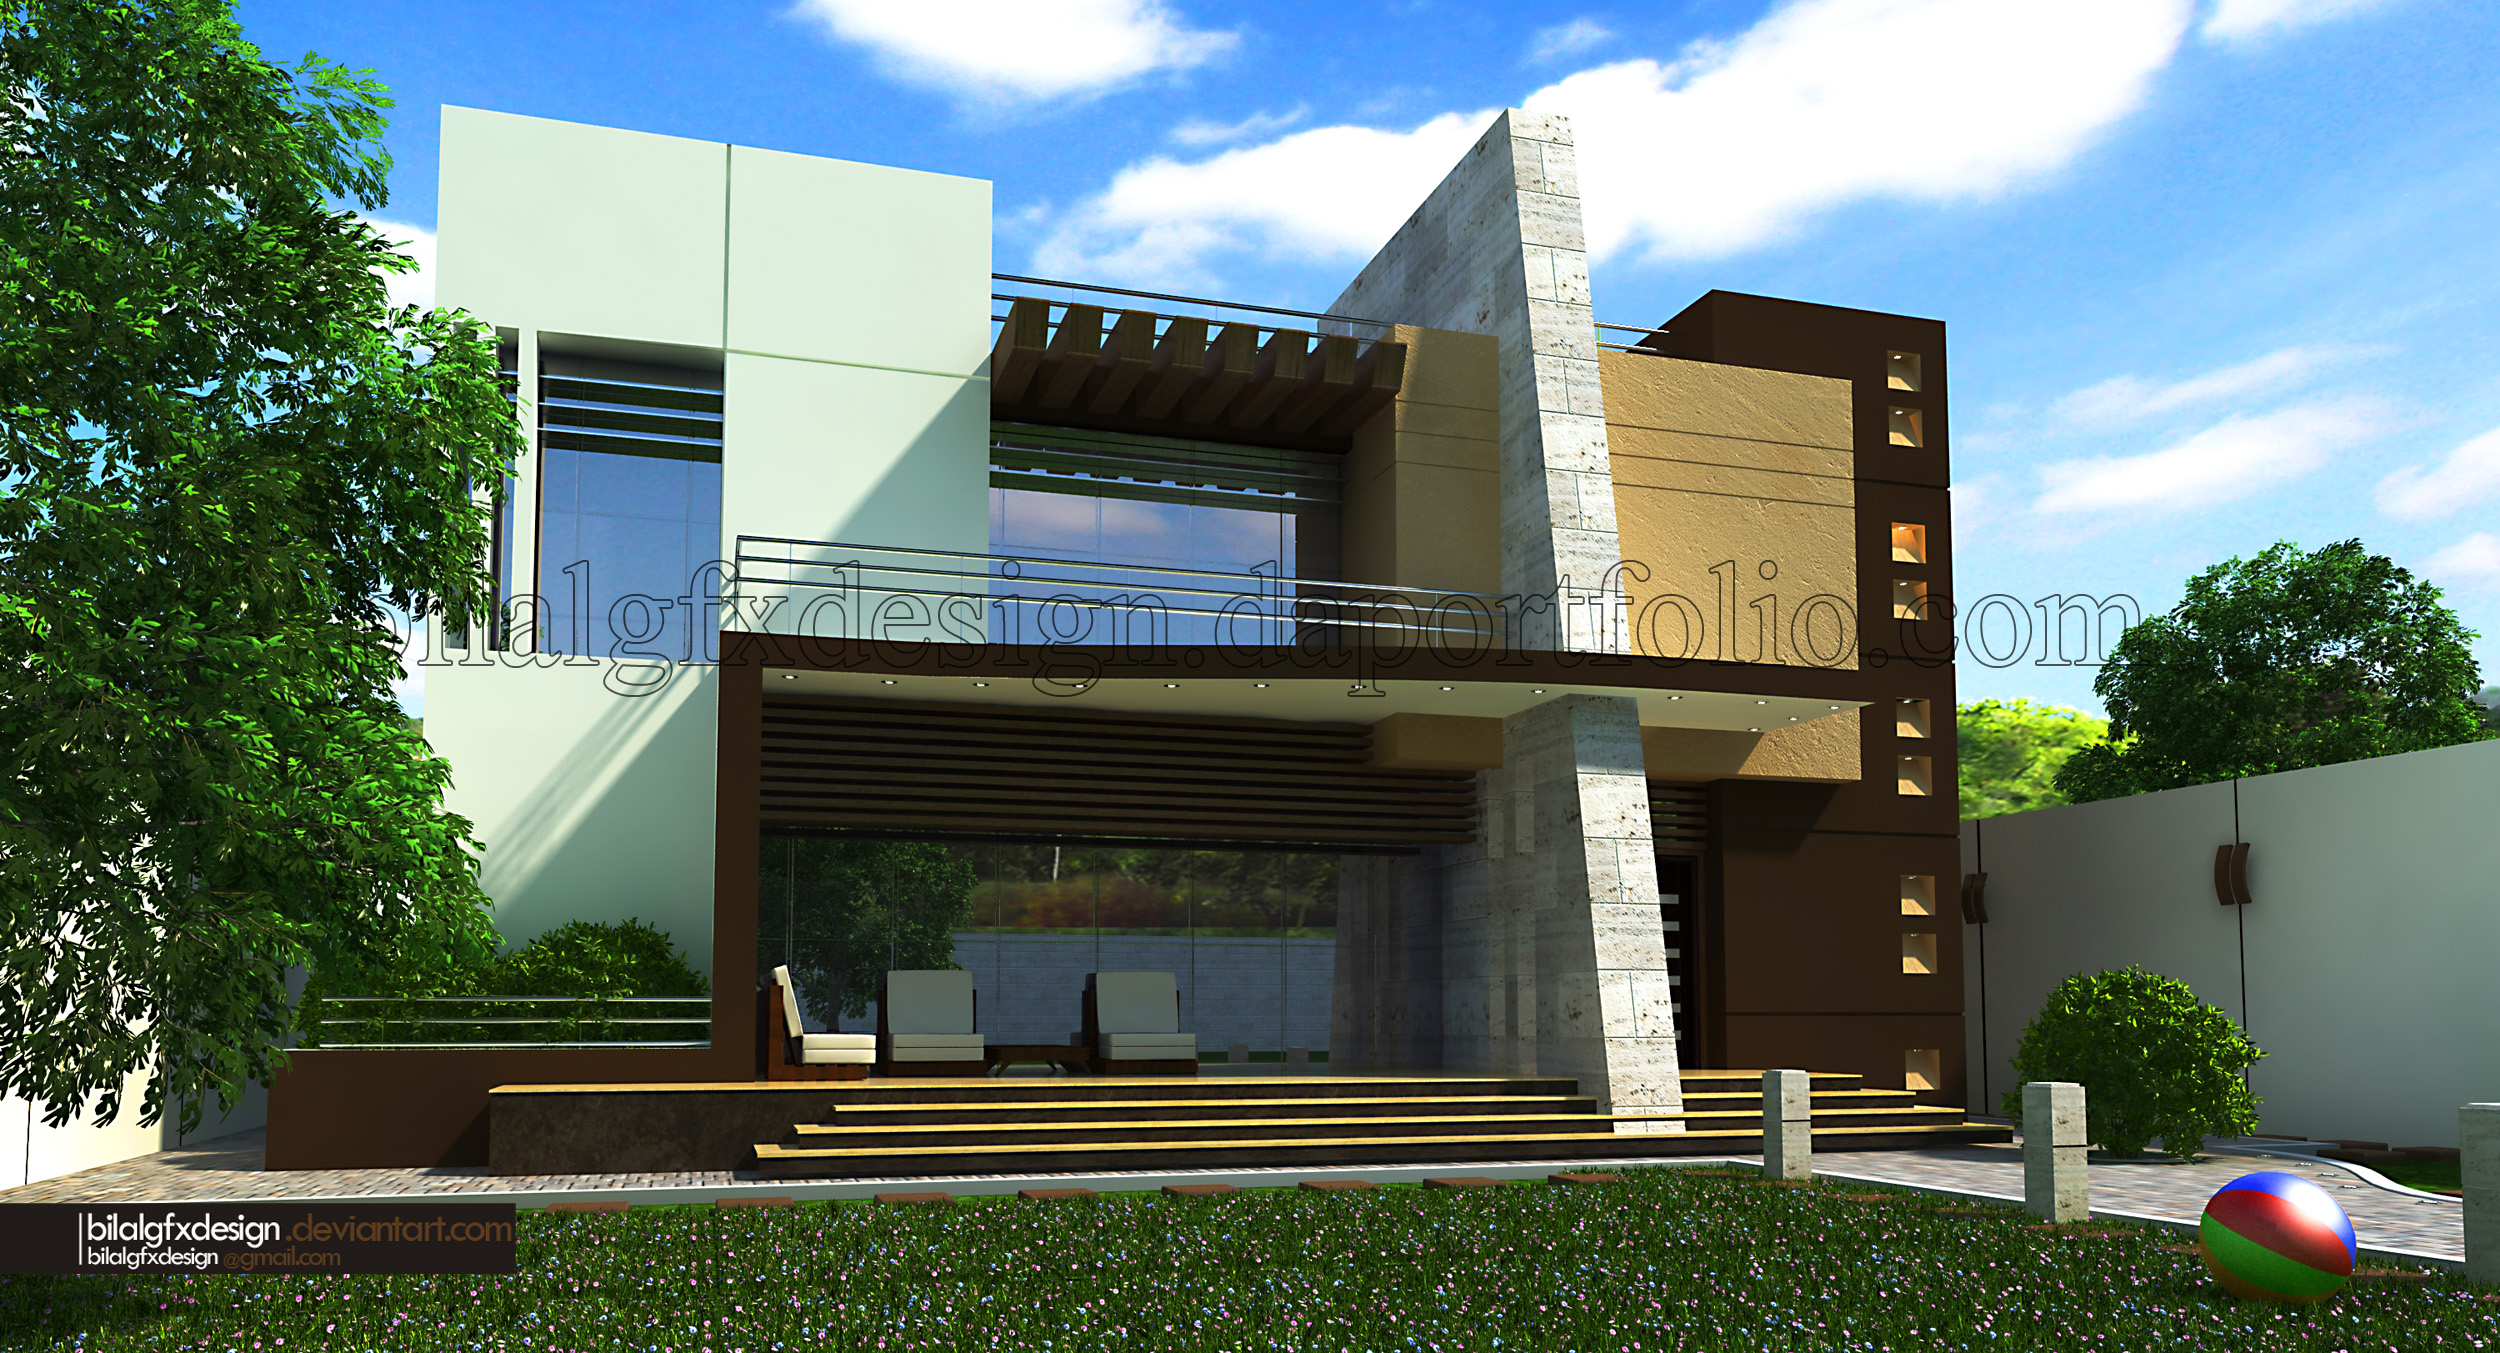 Modern villa 2 by bilalgfxdesign on deviantart - Fantastic modern architecture in futuristic design with owner passion ...